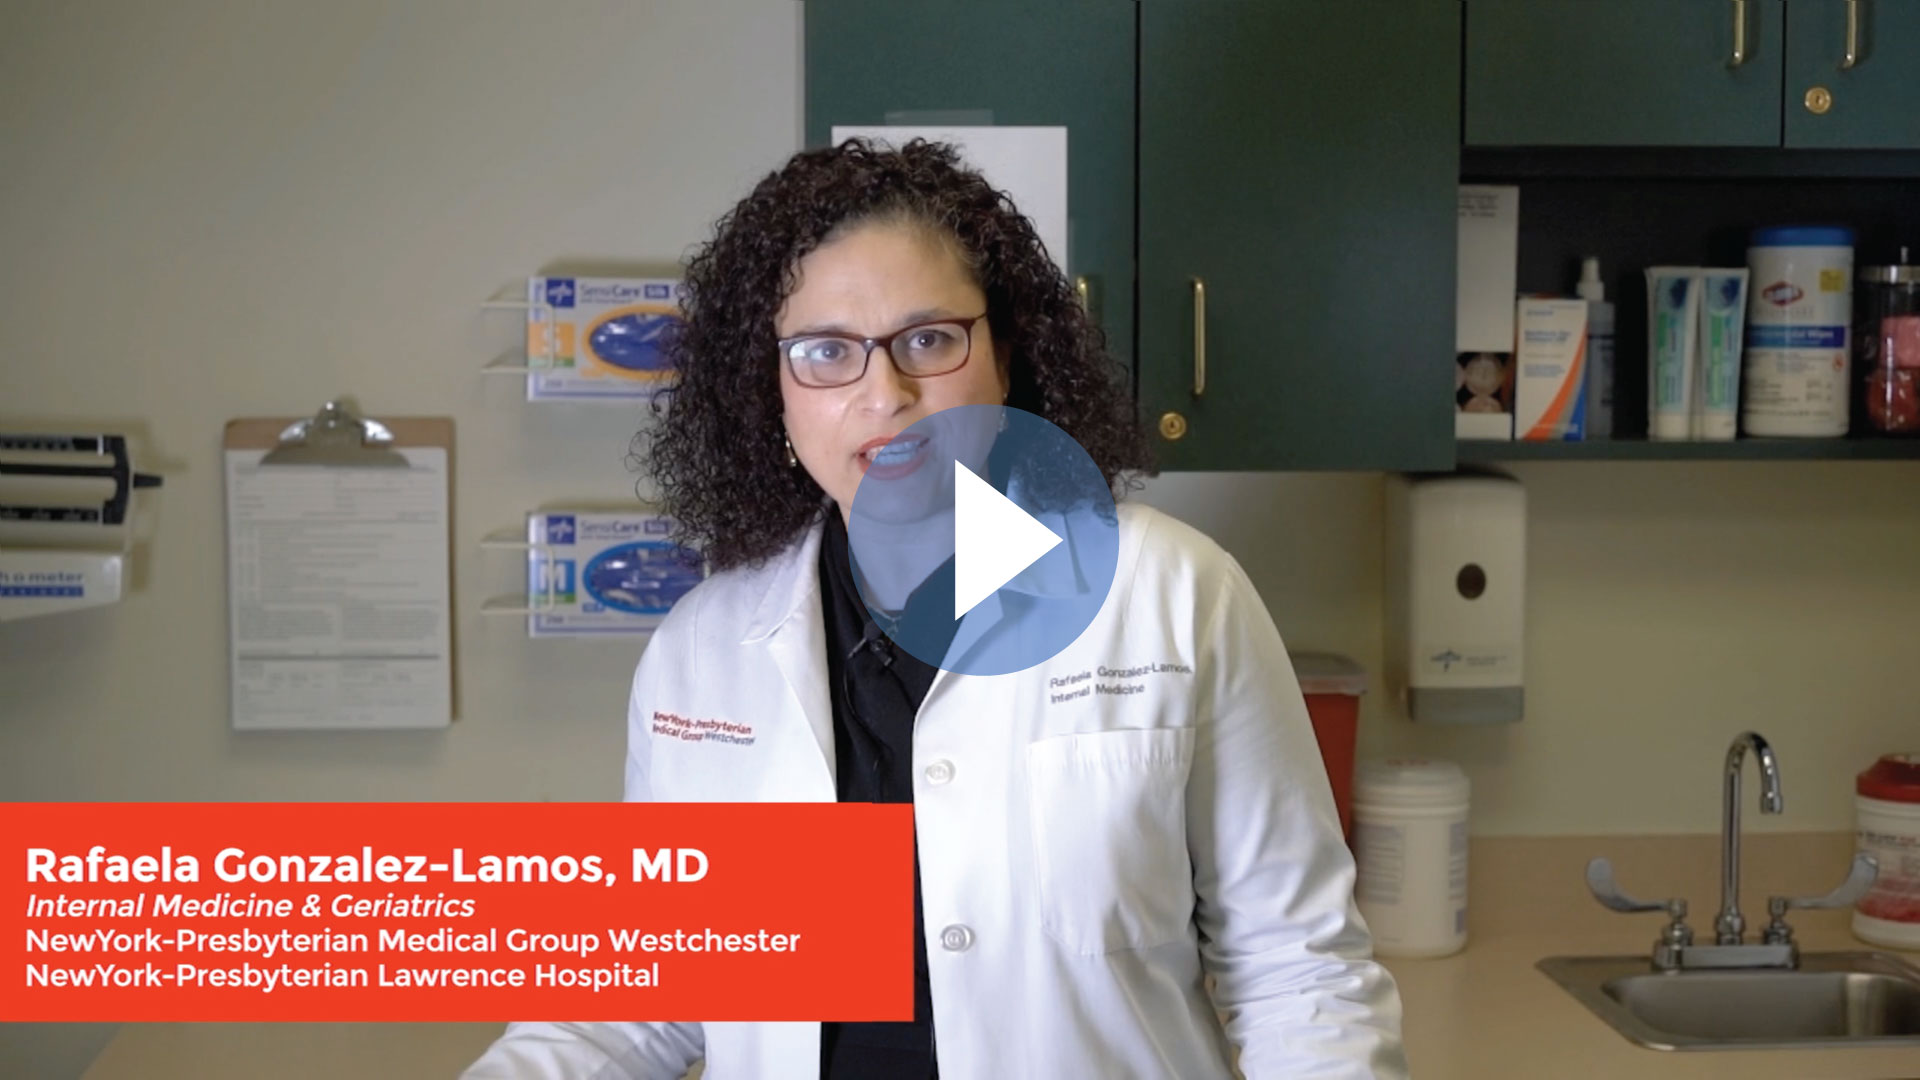 Hear from NewYork Presbyterian Physician Dr. Gonzalez-Lamos about why you should get the COVID-19 Vaccine.